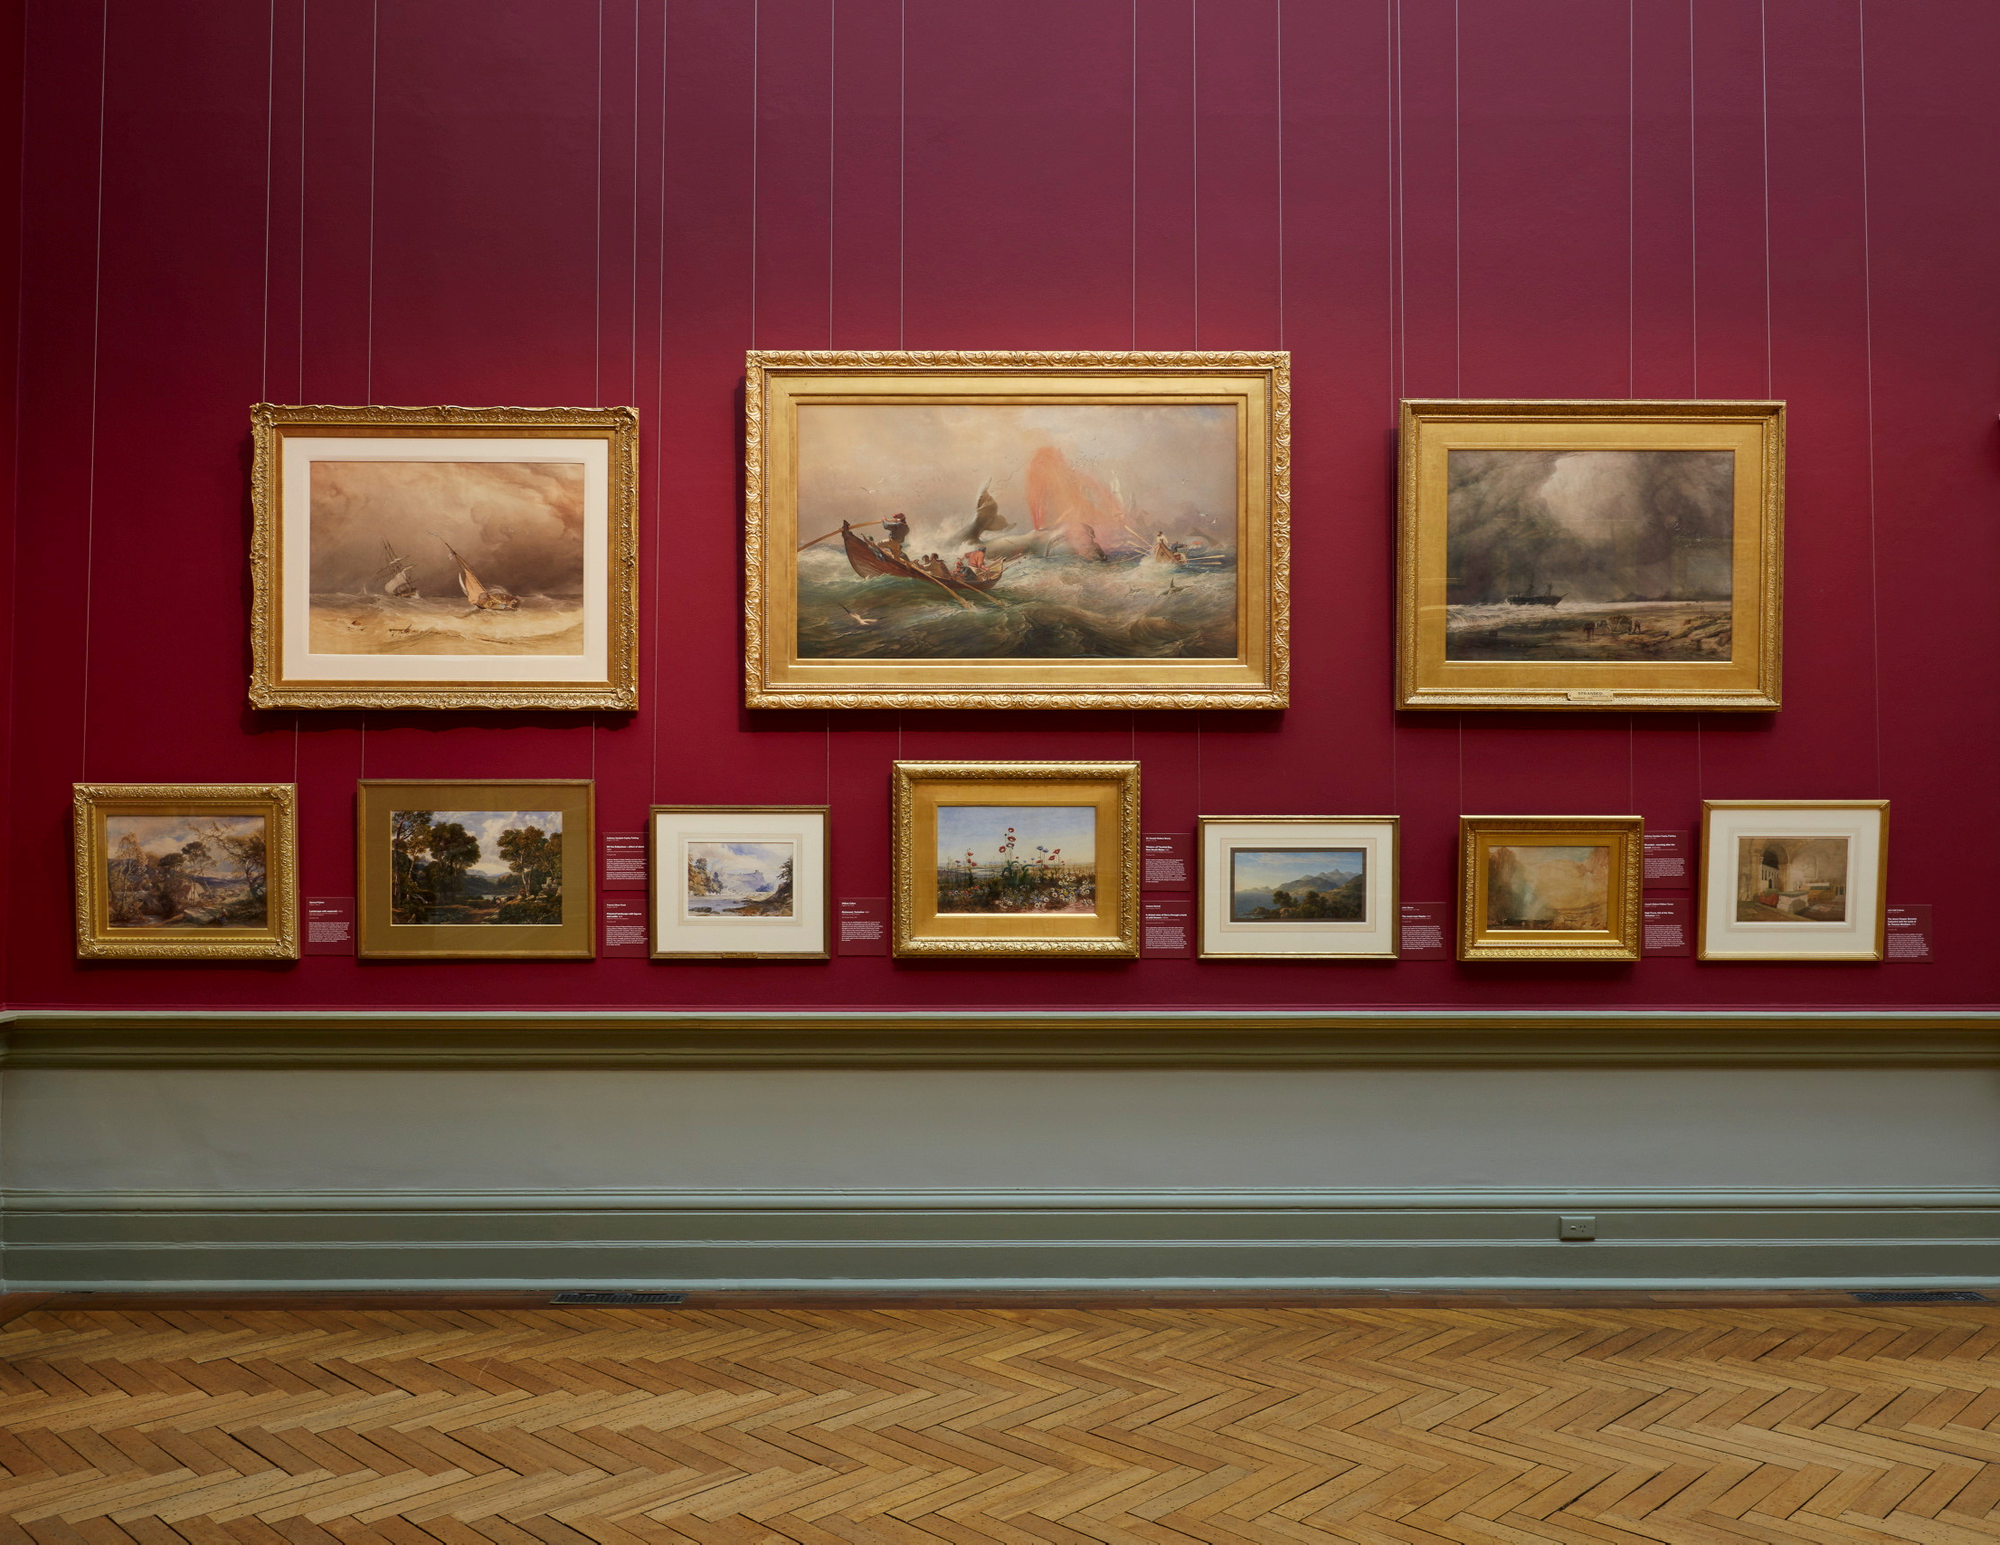 19th-century watercolours from the Gallery's collection on display in the Grand Courts